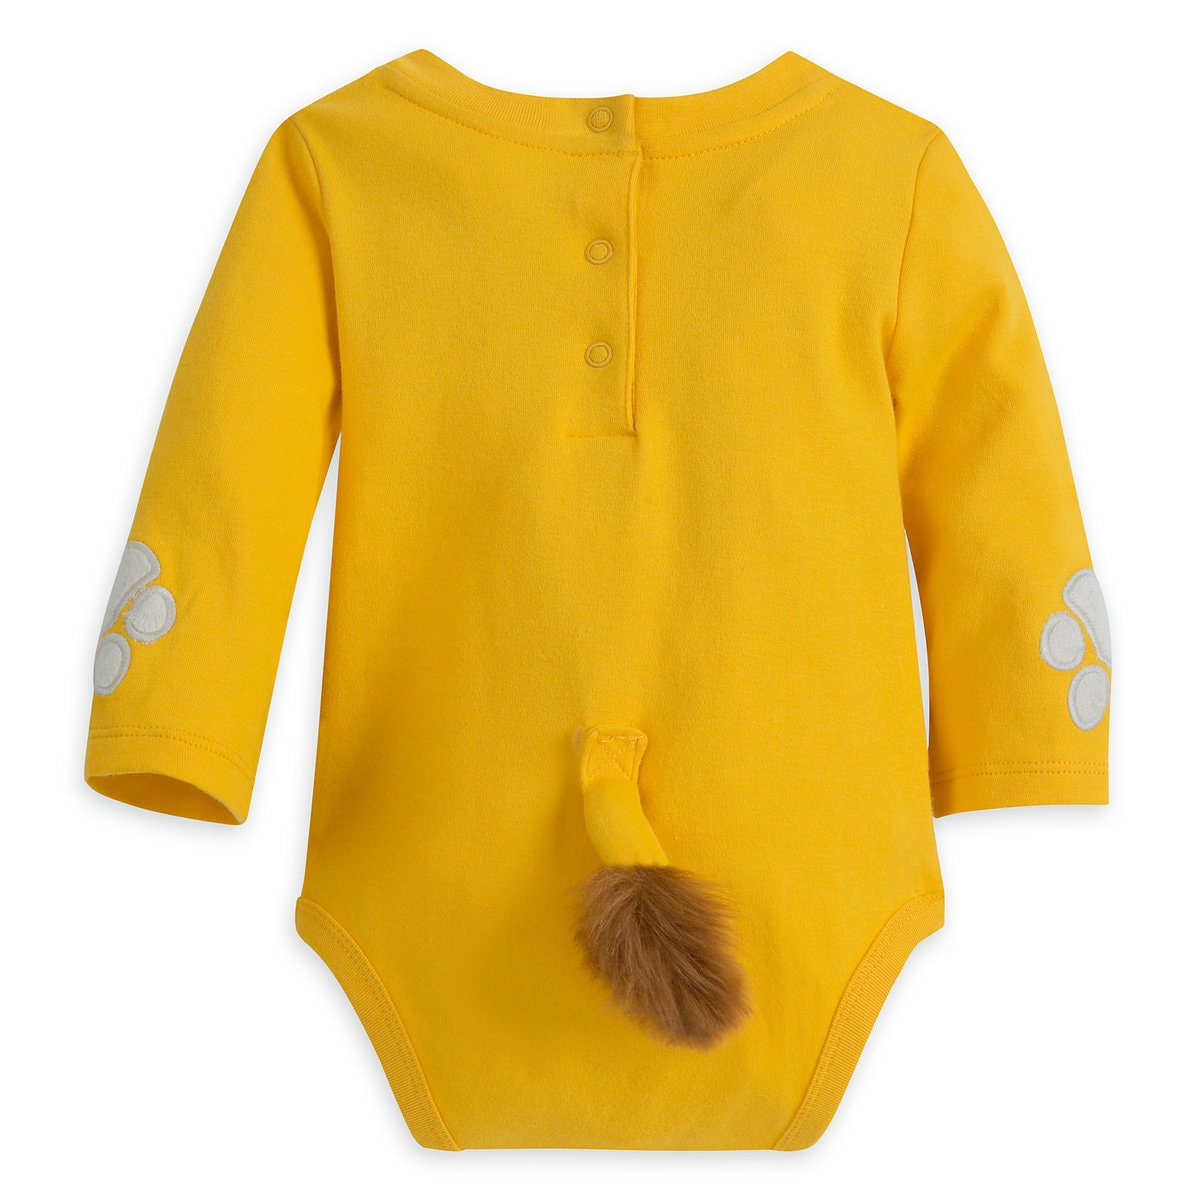 d113a347a65a0 Simba Costume Bodysuit for Baby | shopDisney